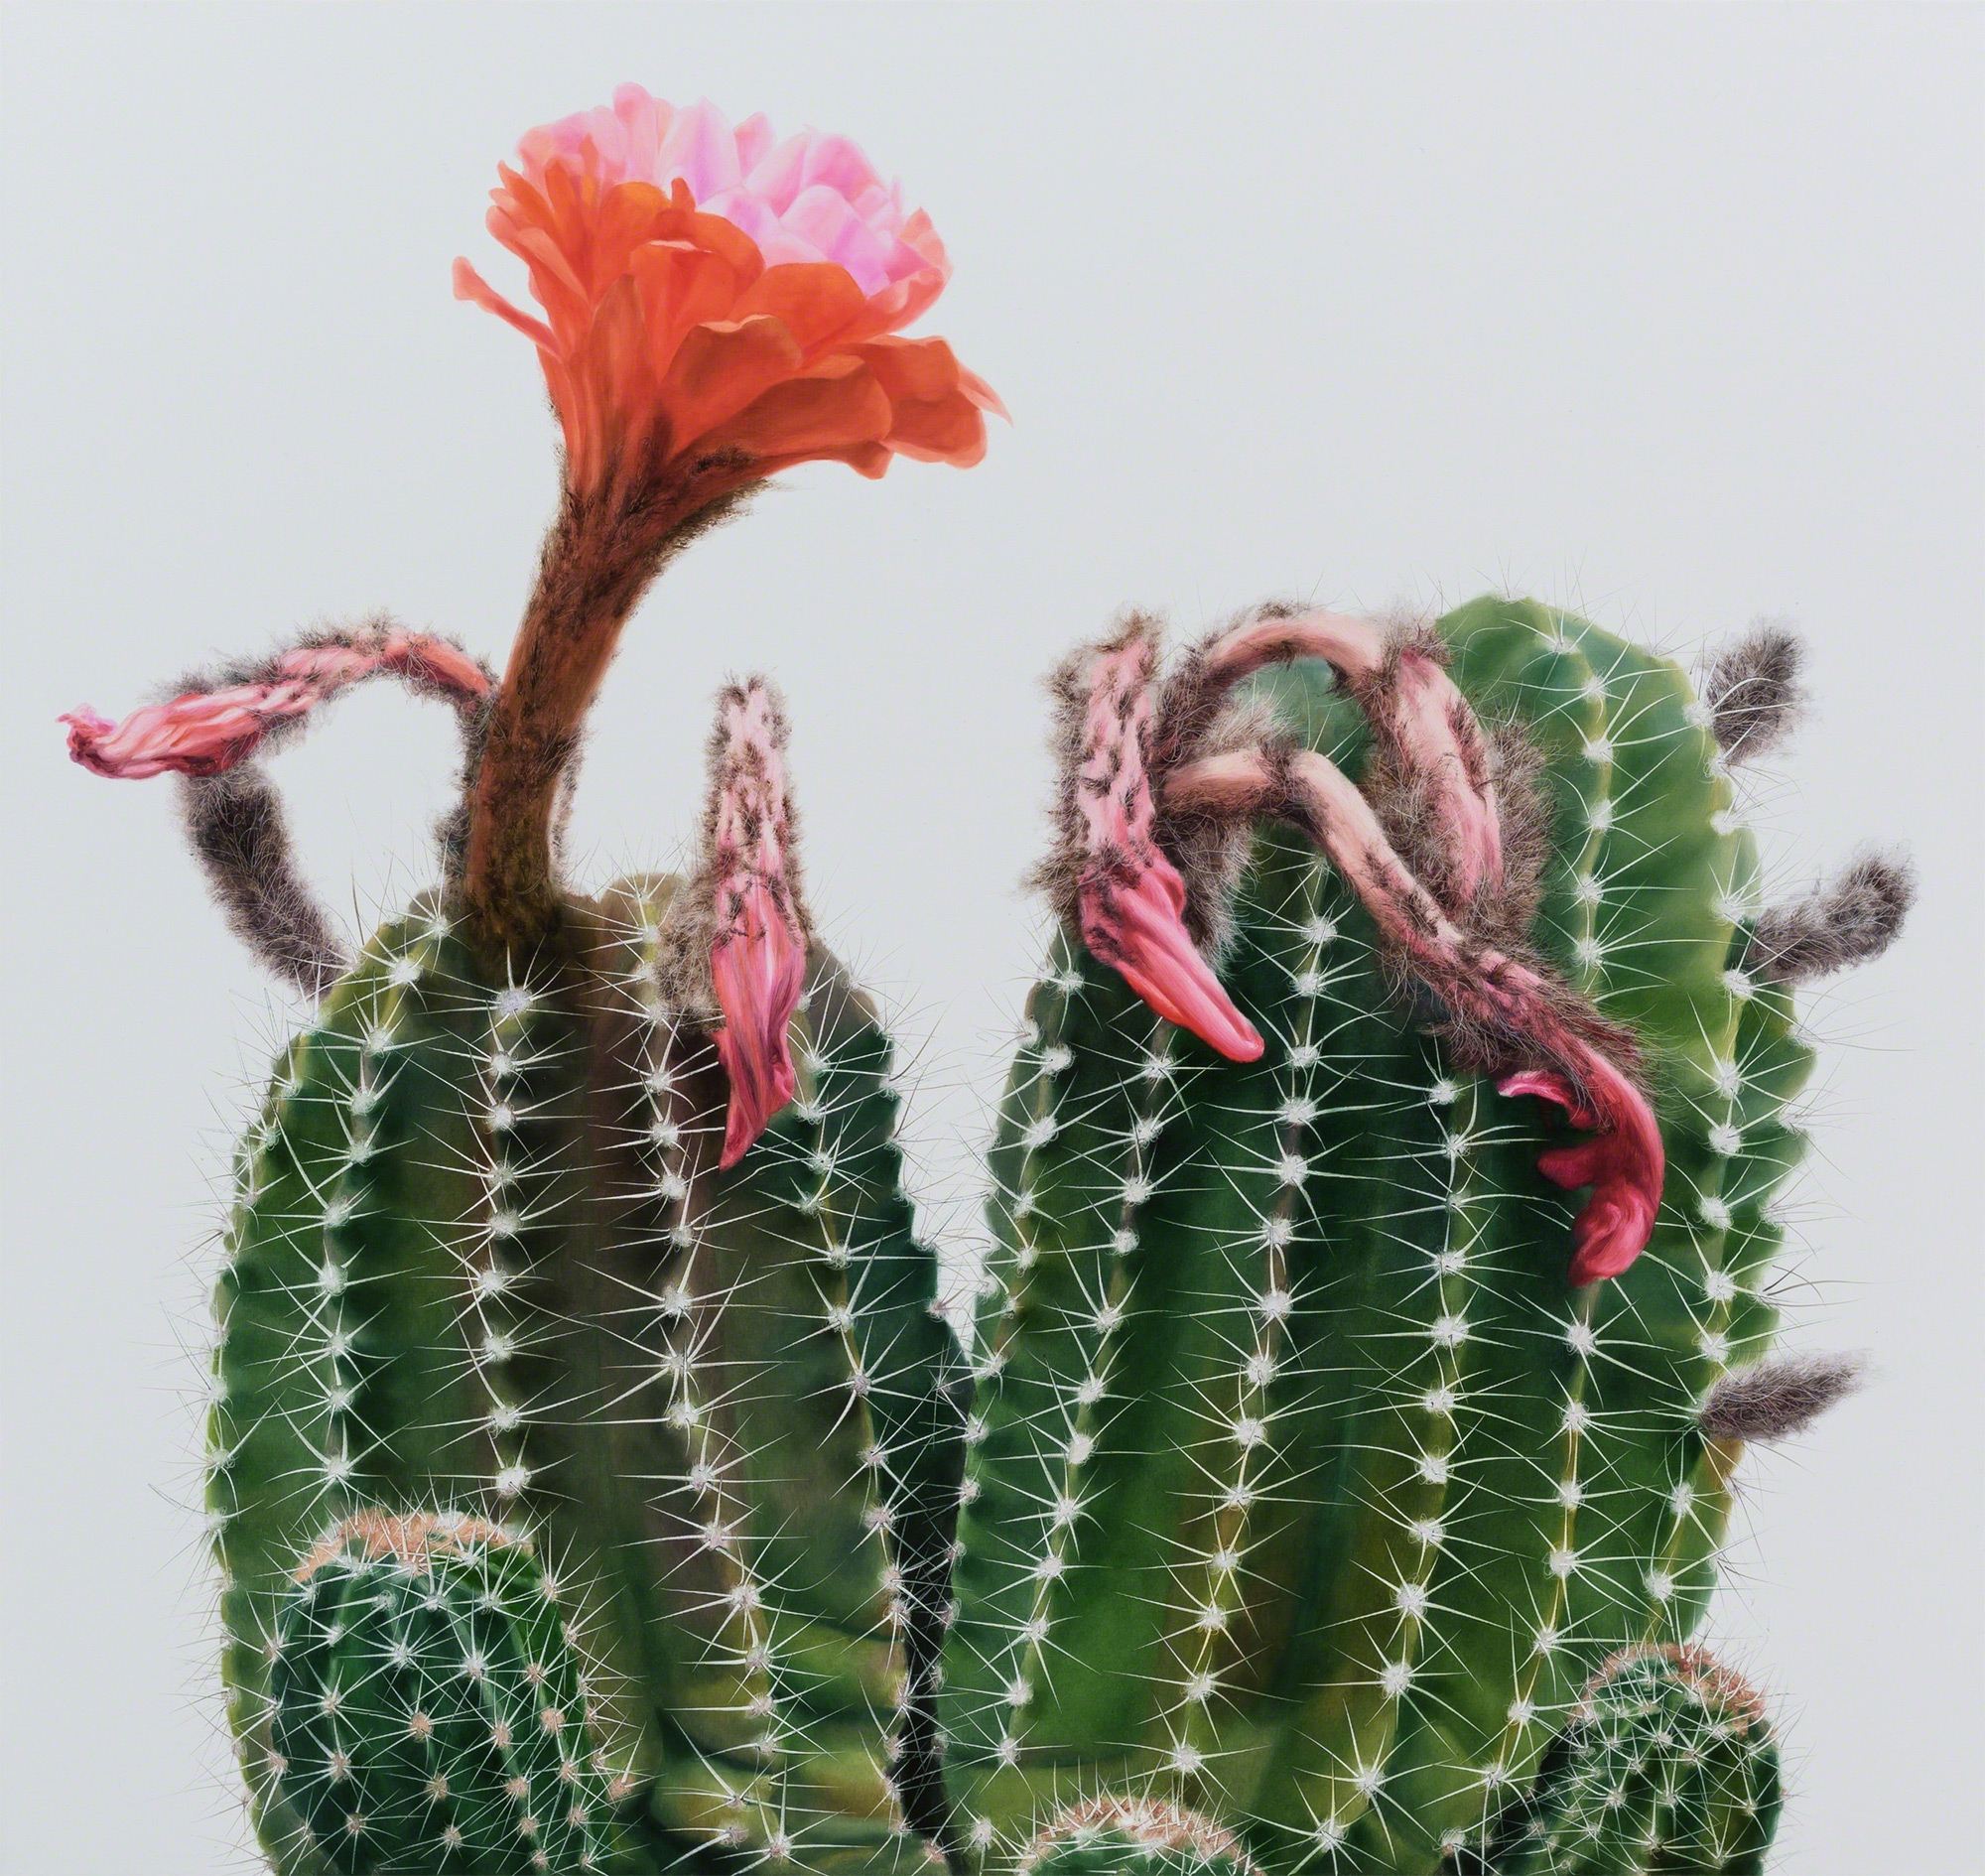 Cactus No. 98 , 2015. Oil on canvas. Courtesy Johyun Gallery.